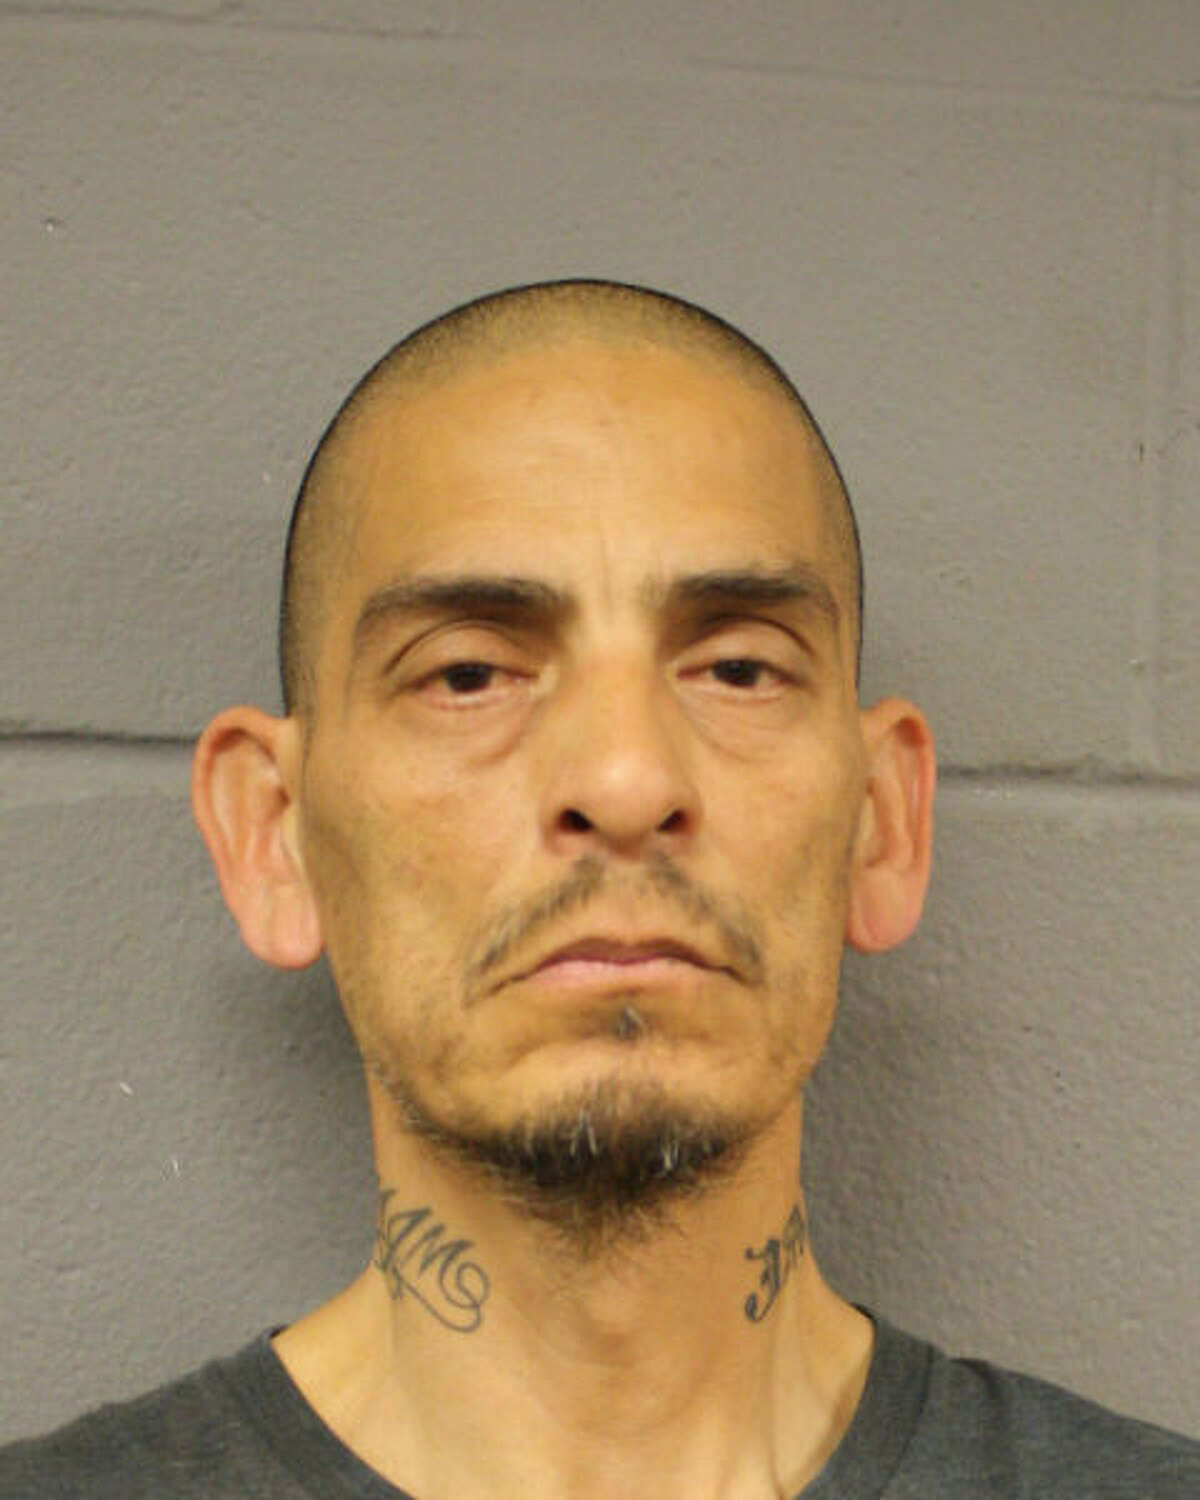 Octavio Martinez has been charged with criminal negligent homicide